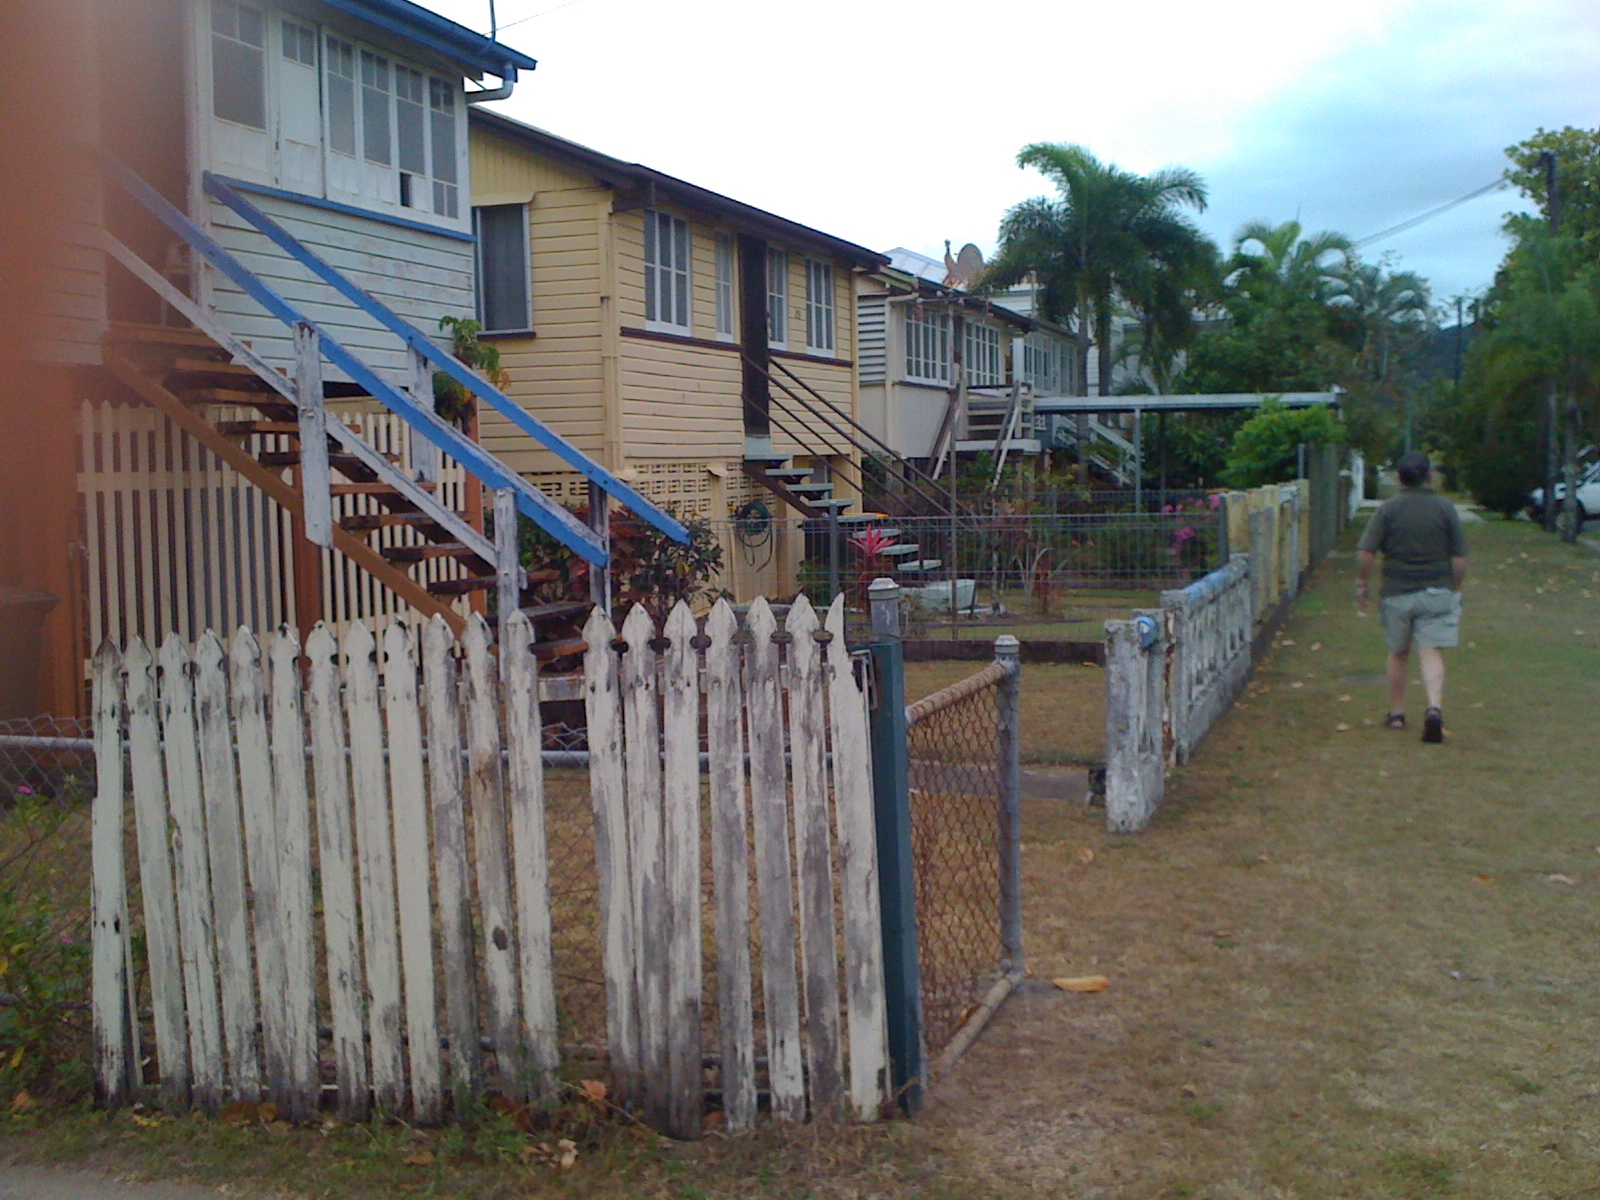 Rustic homes in the Queenslander style, raised off the ground to protect the occupants from floods, in the streets of North Cairns, in Australia.